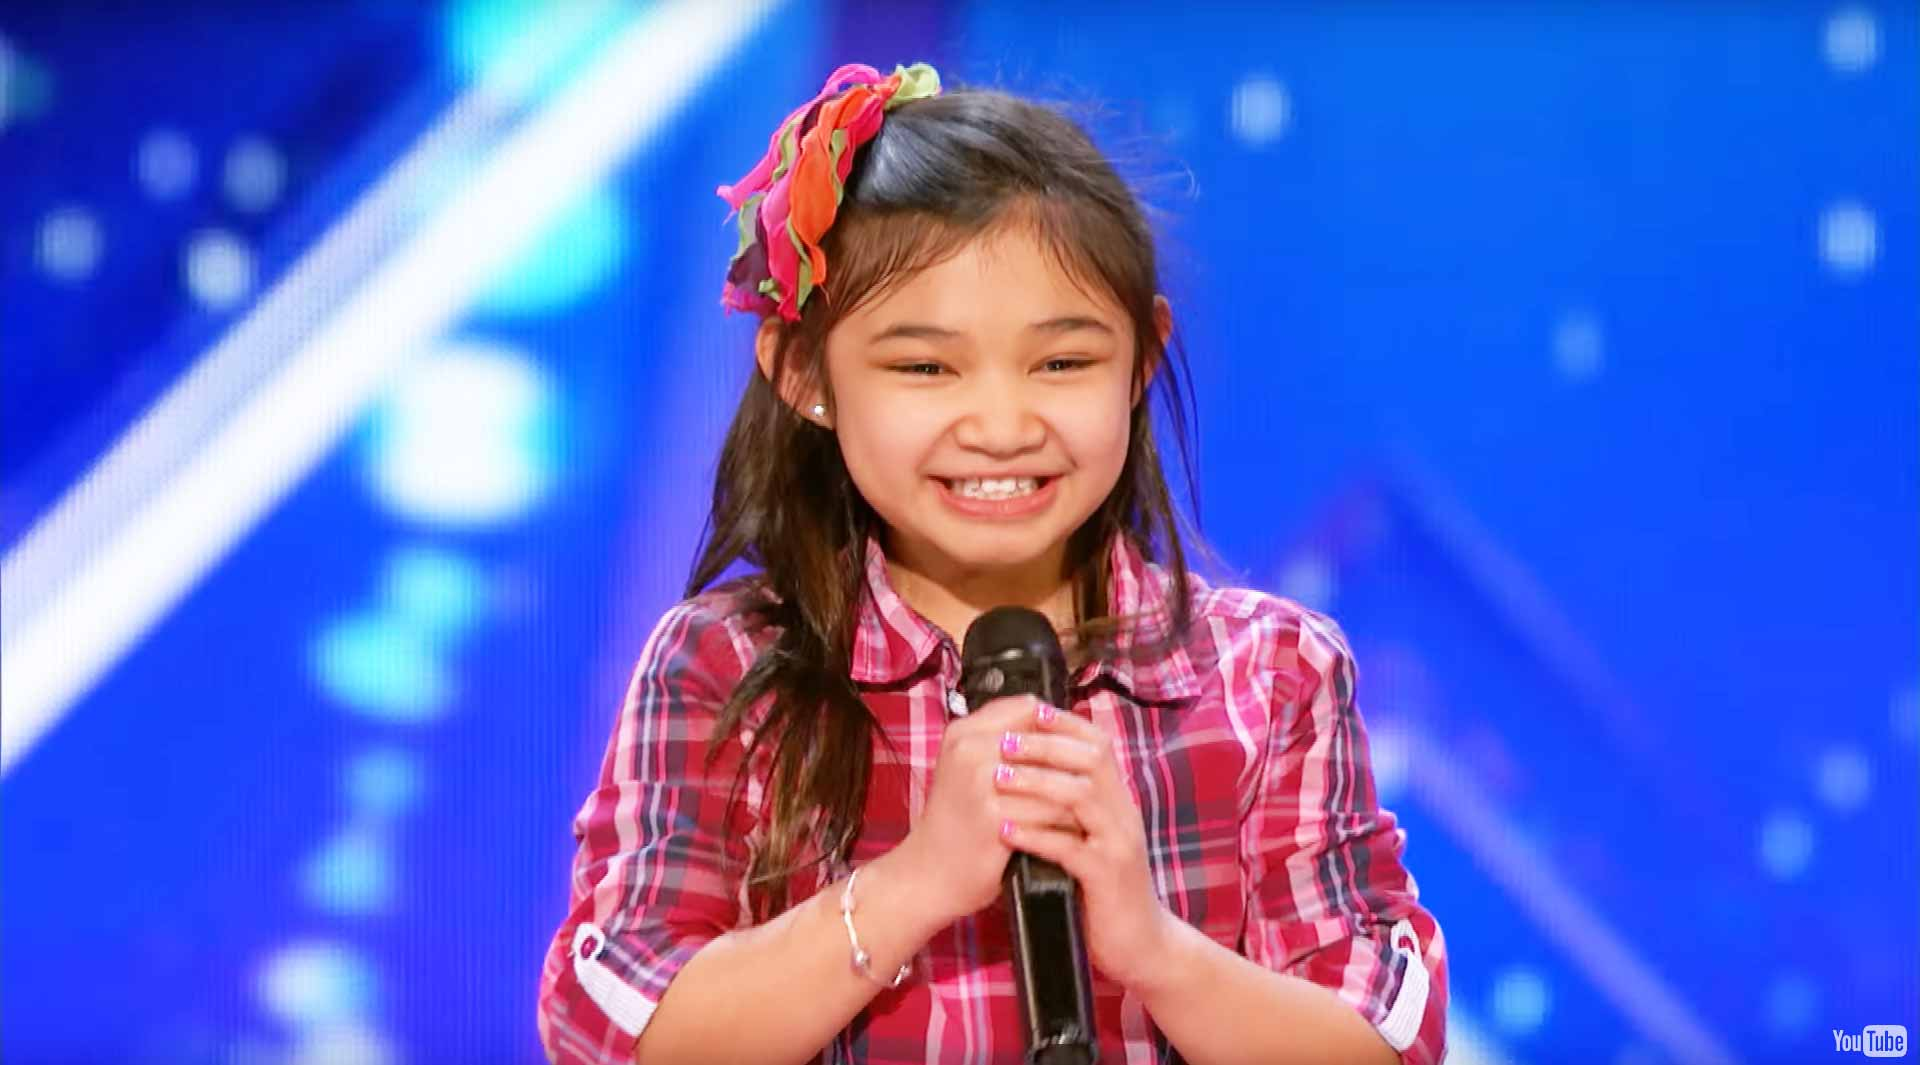 Americas got talent 2017 9 year old opera singer - 9 Year Old Angelica Hale Stuns America S Got Talent With Her Powerful Singing Voice